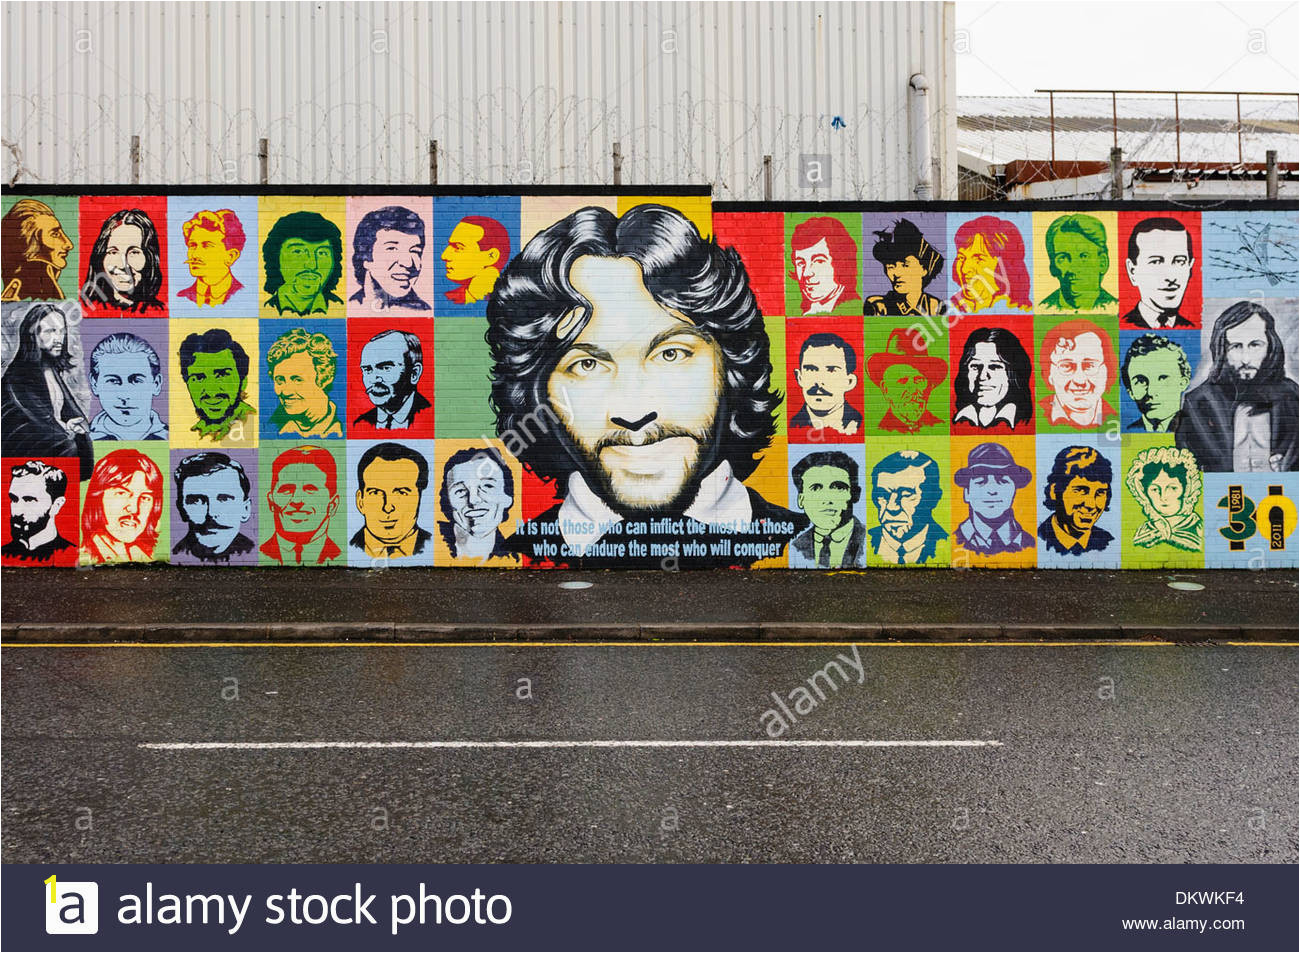 Belfast Peace Wall Murals Ira Wall Mural Stock S & Ira Wall Mural Stock Alamy